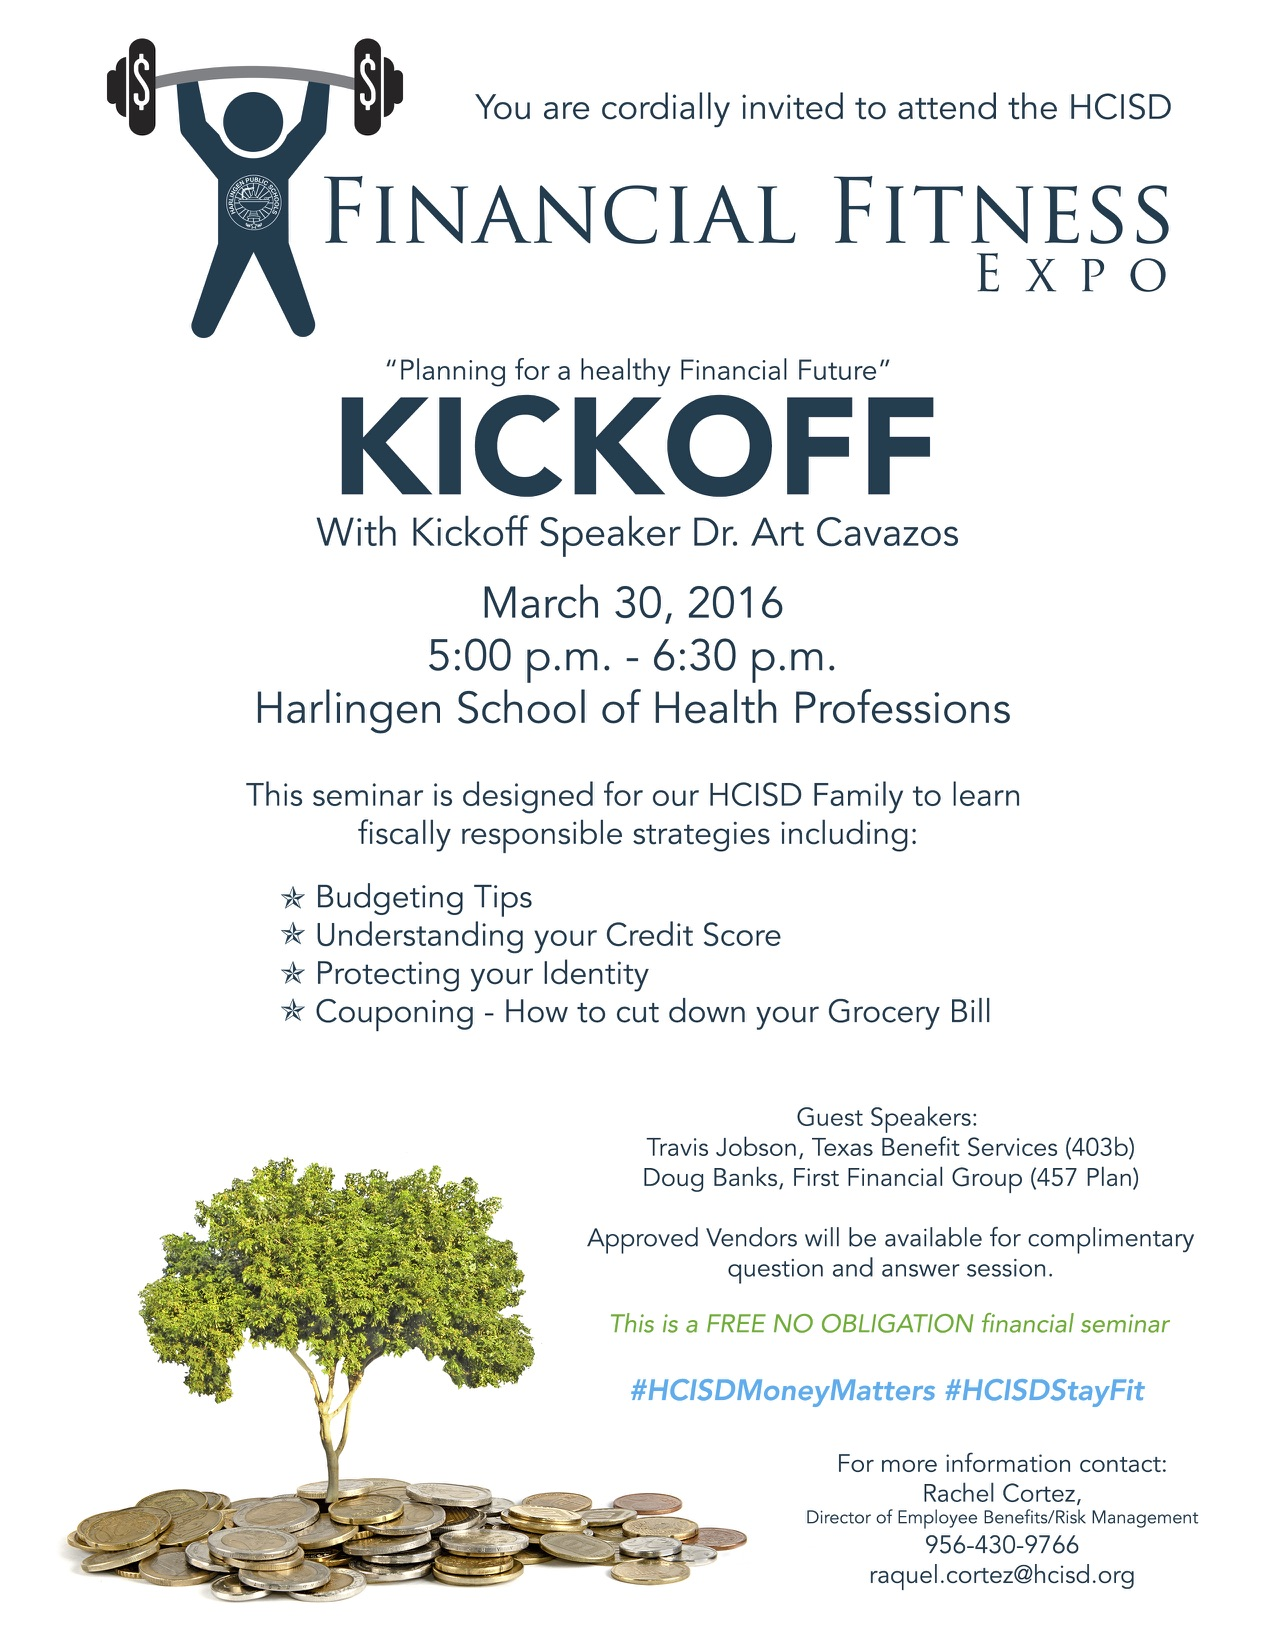 District to host Financial Fitness Expo for HCISD family